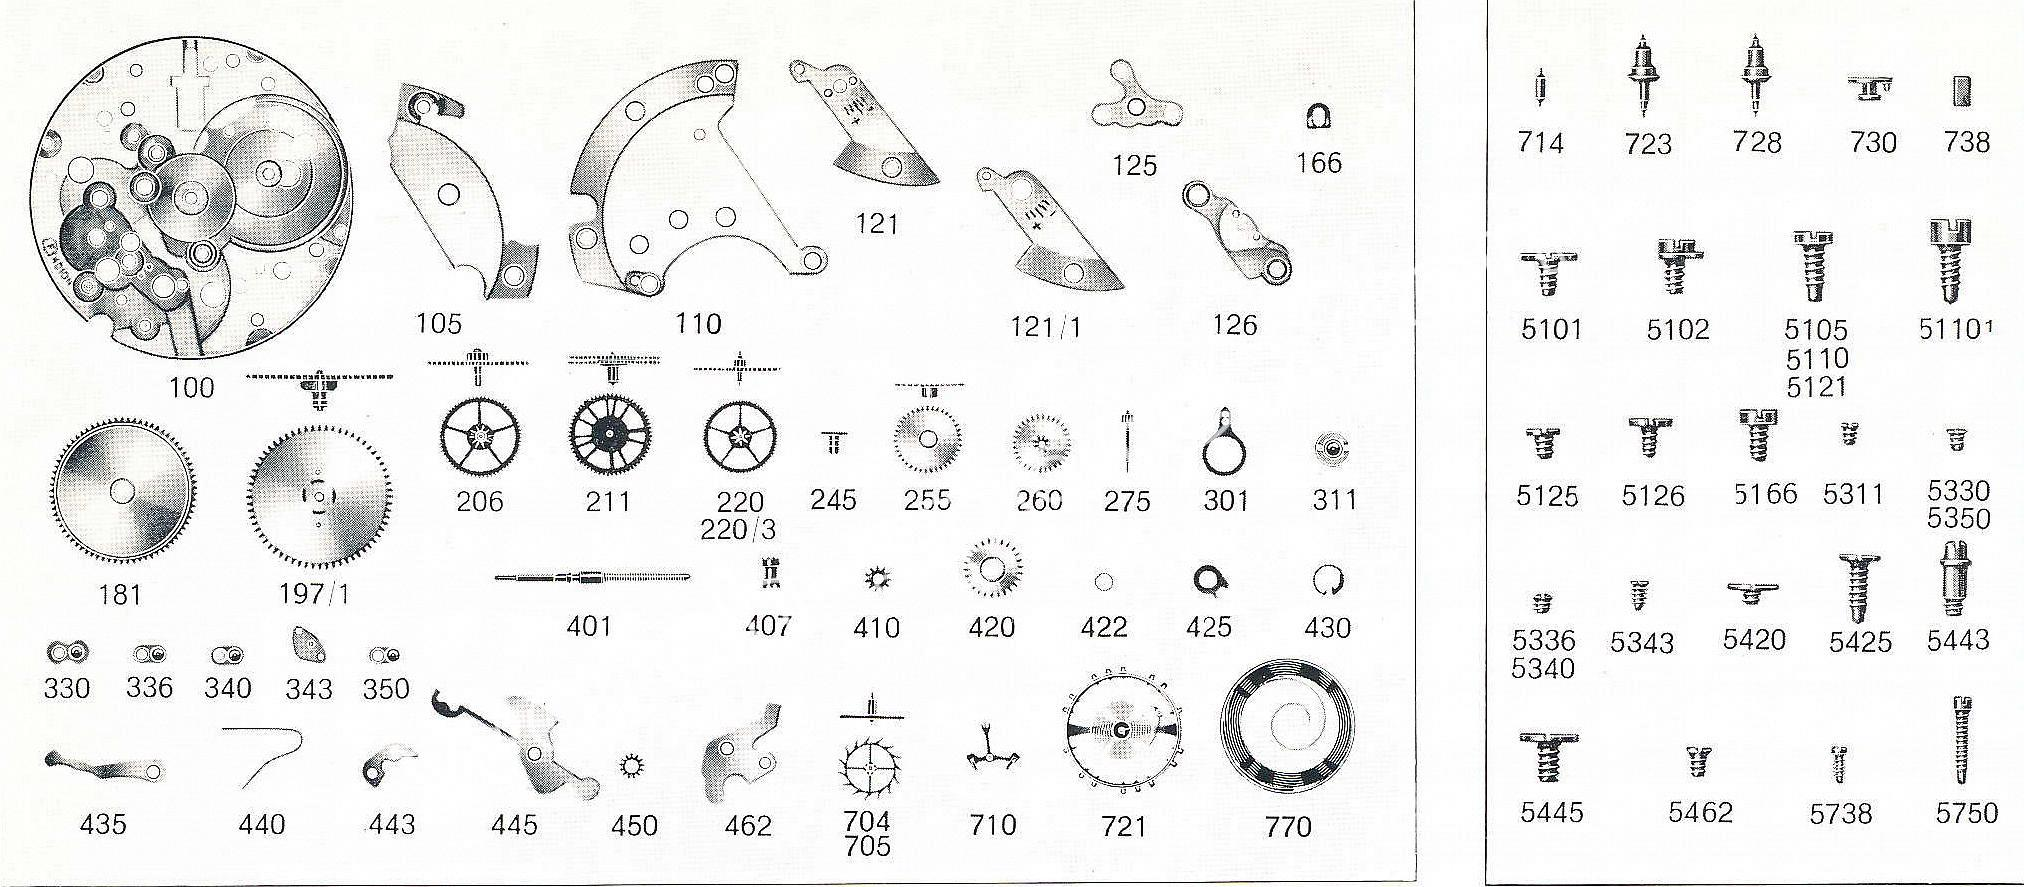 Felsa 4010 N watch spare parts